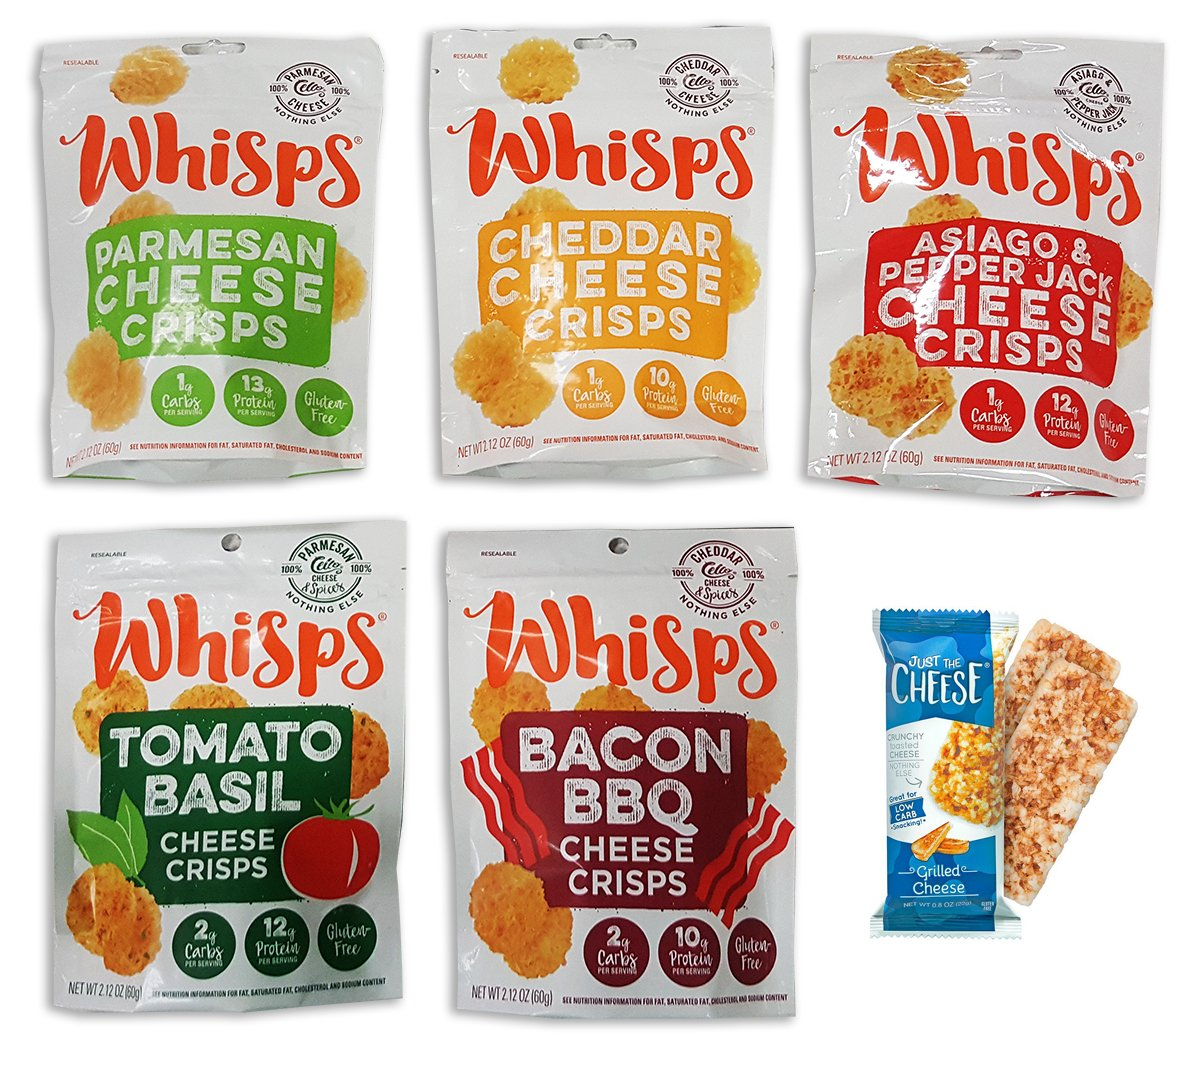 New Flavors: Cello Whisps Assortment Bundle, All 5 Flavors, Just The Cheese 100% Grilled Cheese Bars